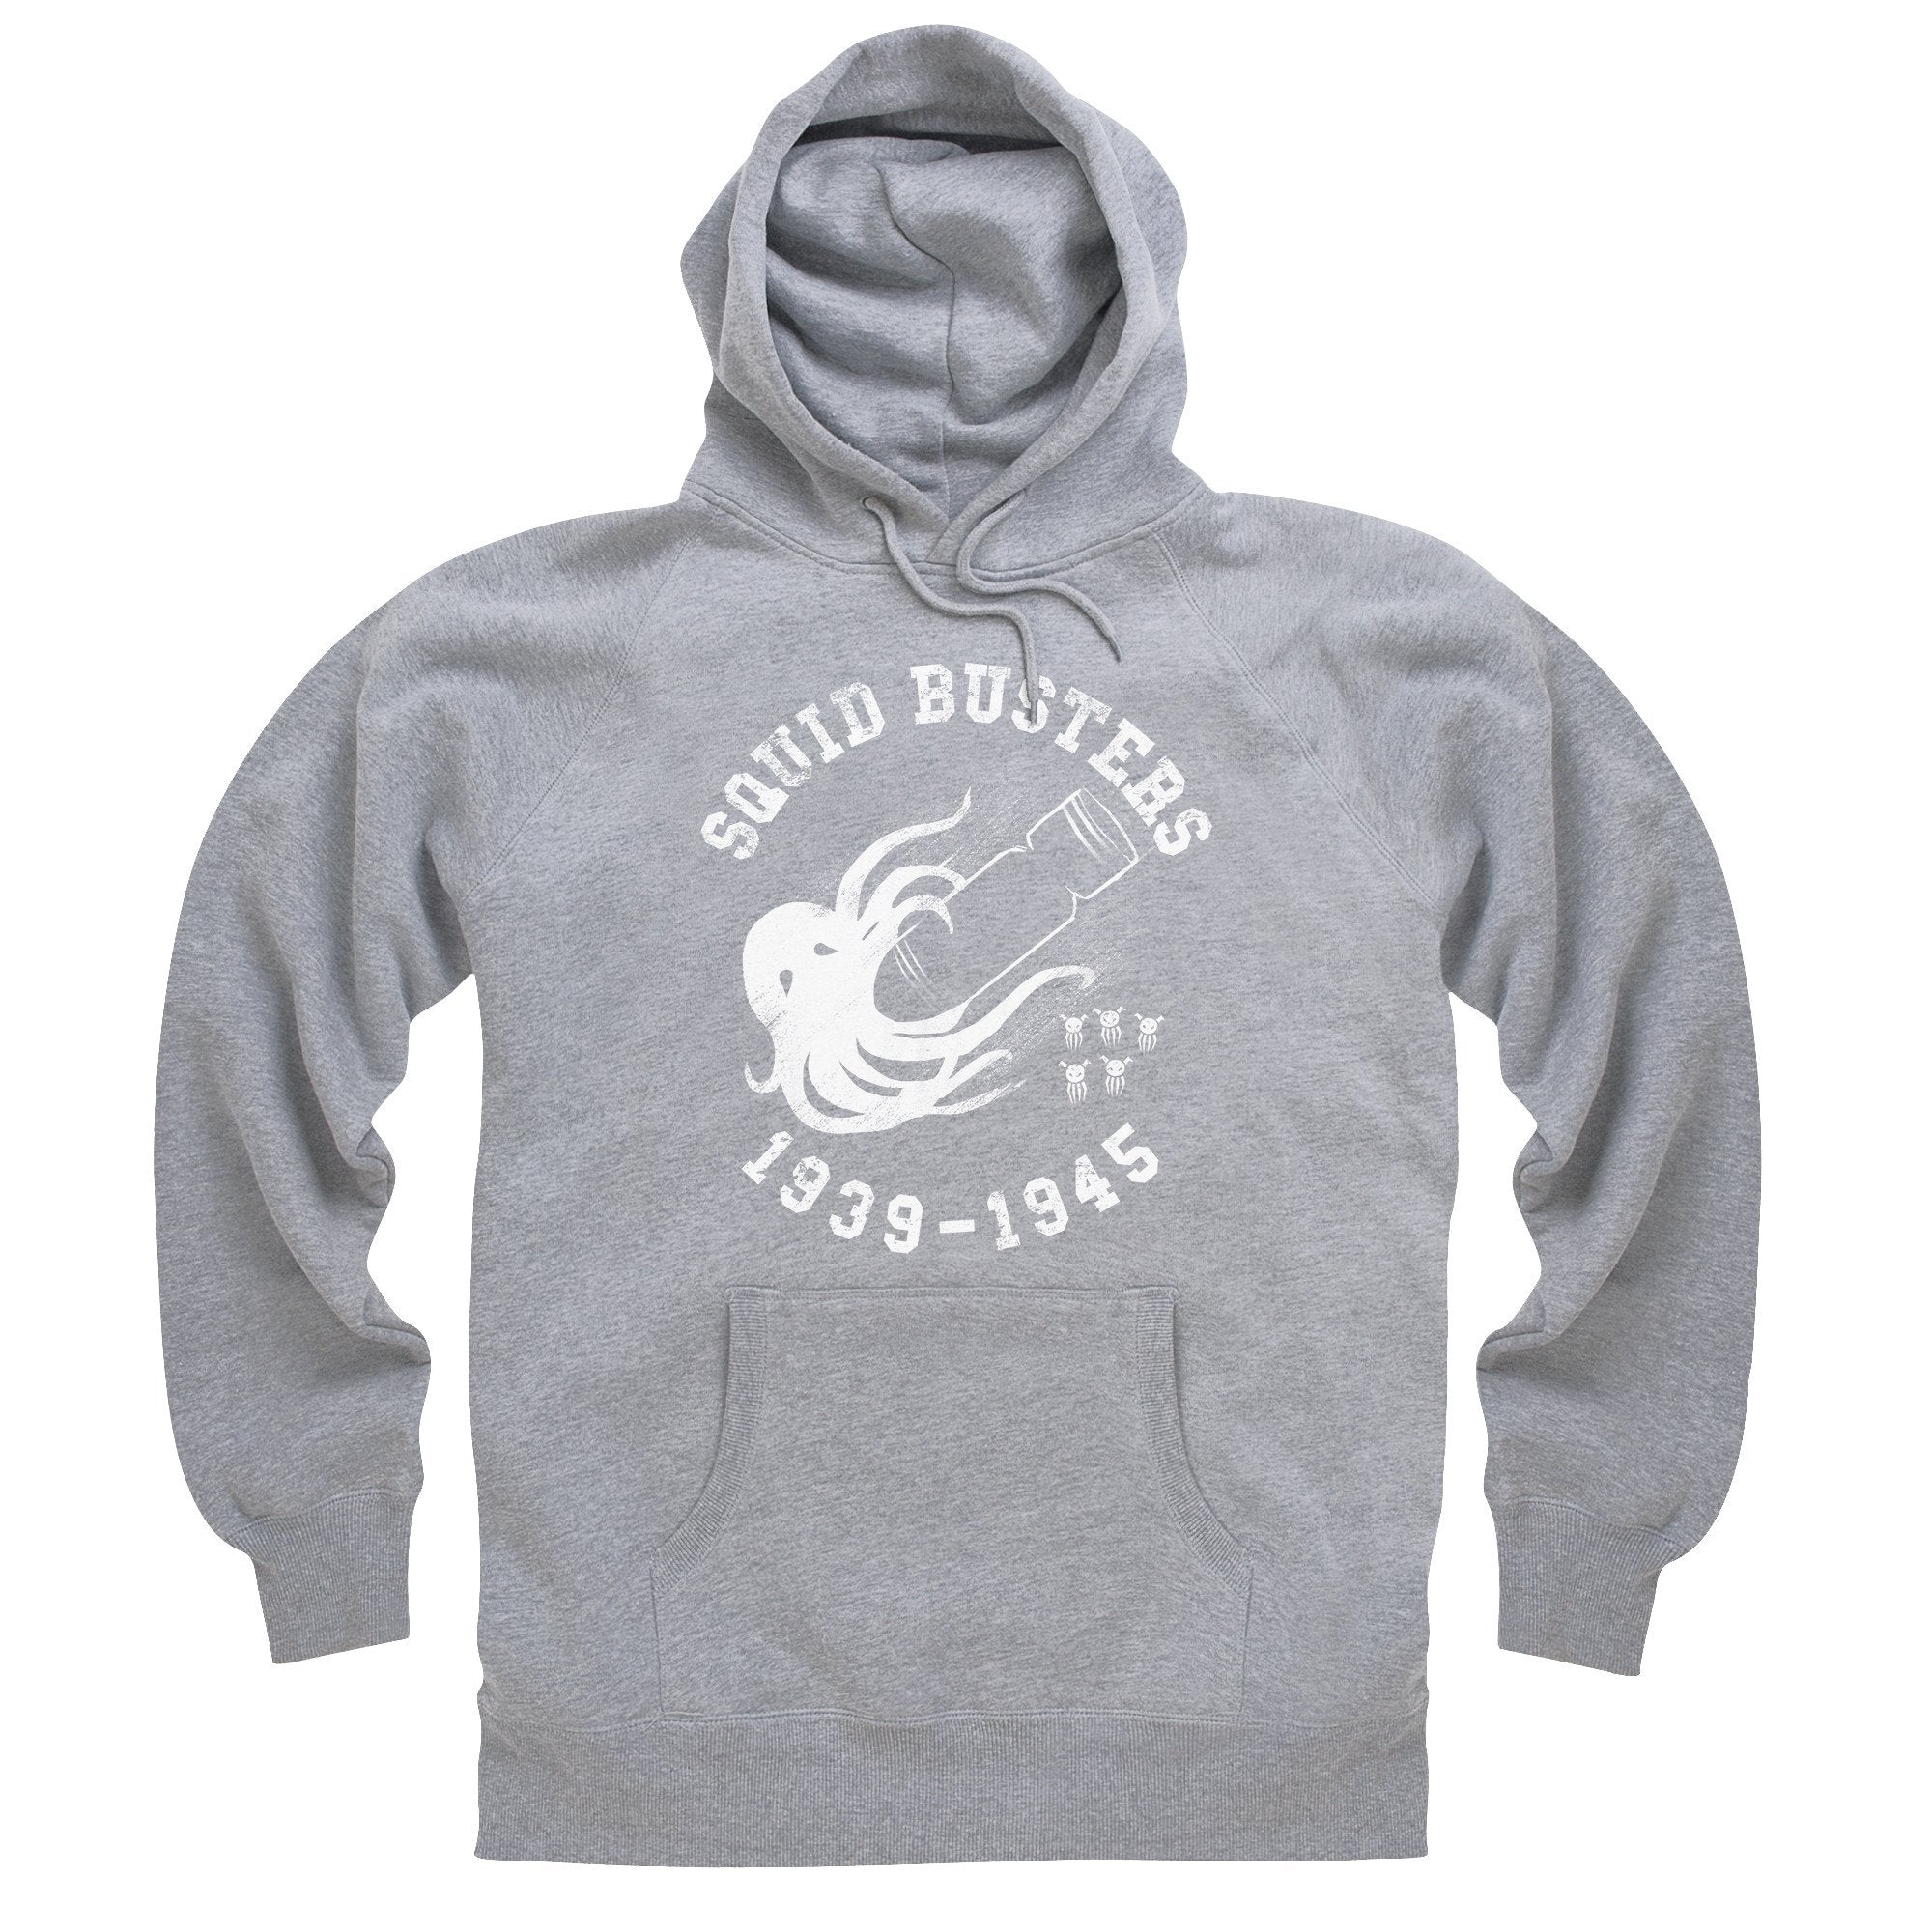 Achtung! Cthulhu: Squid Buster hoodie